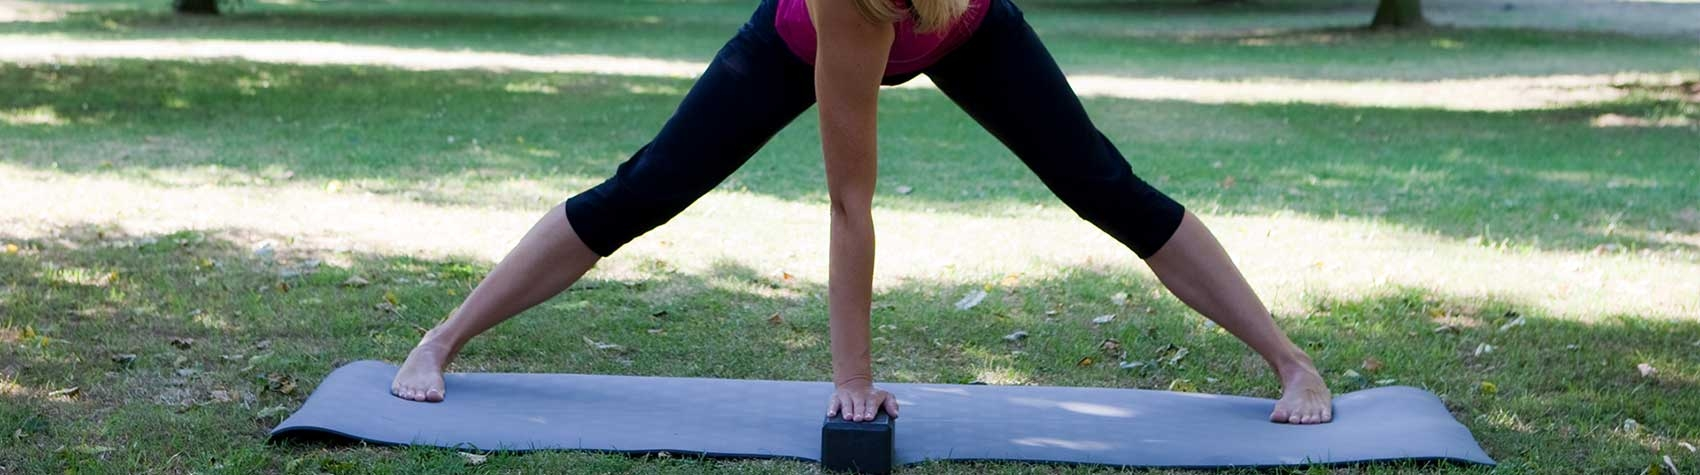 Pilates and Yoga Accessories